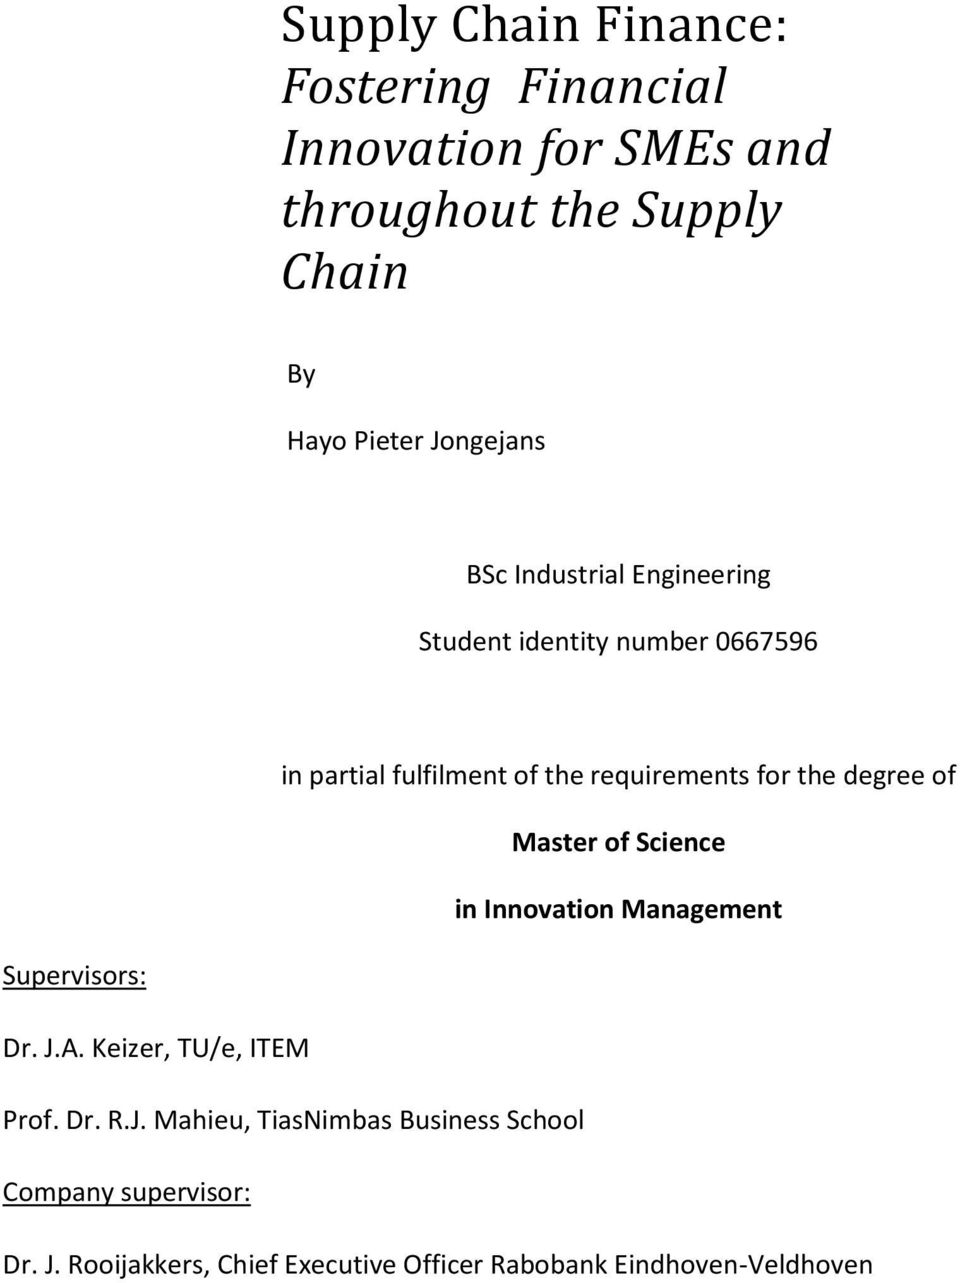 Supply Chain Management Dissertation Topics